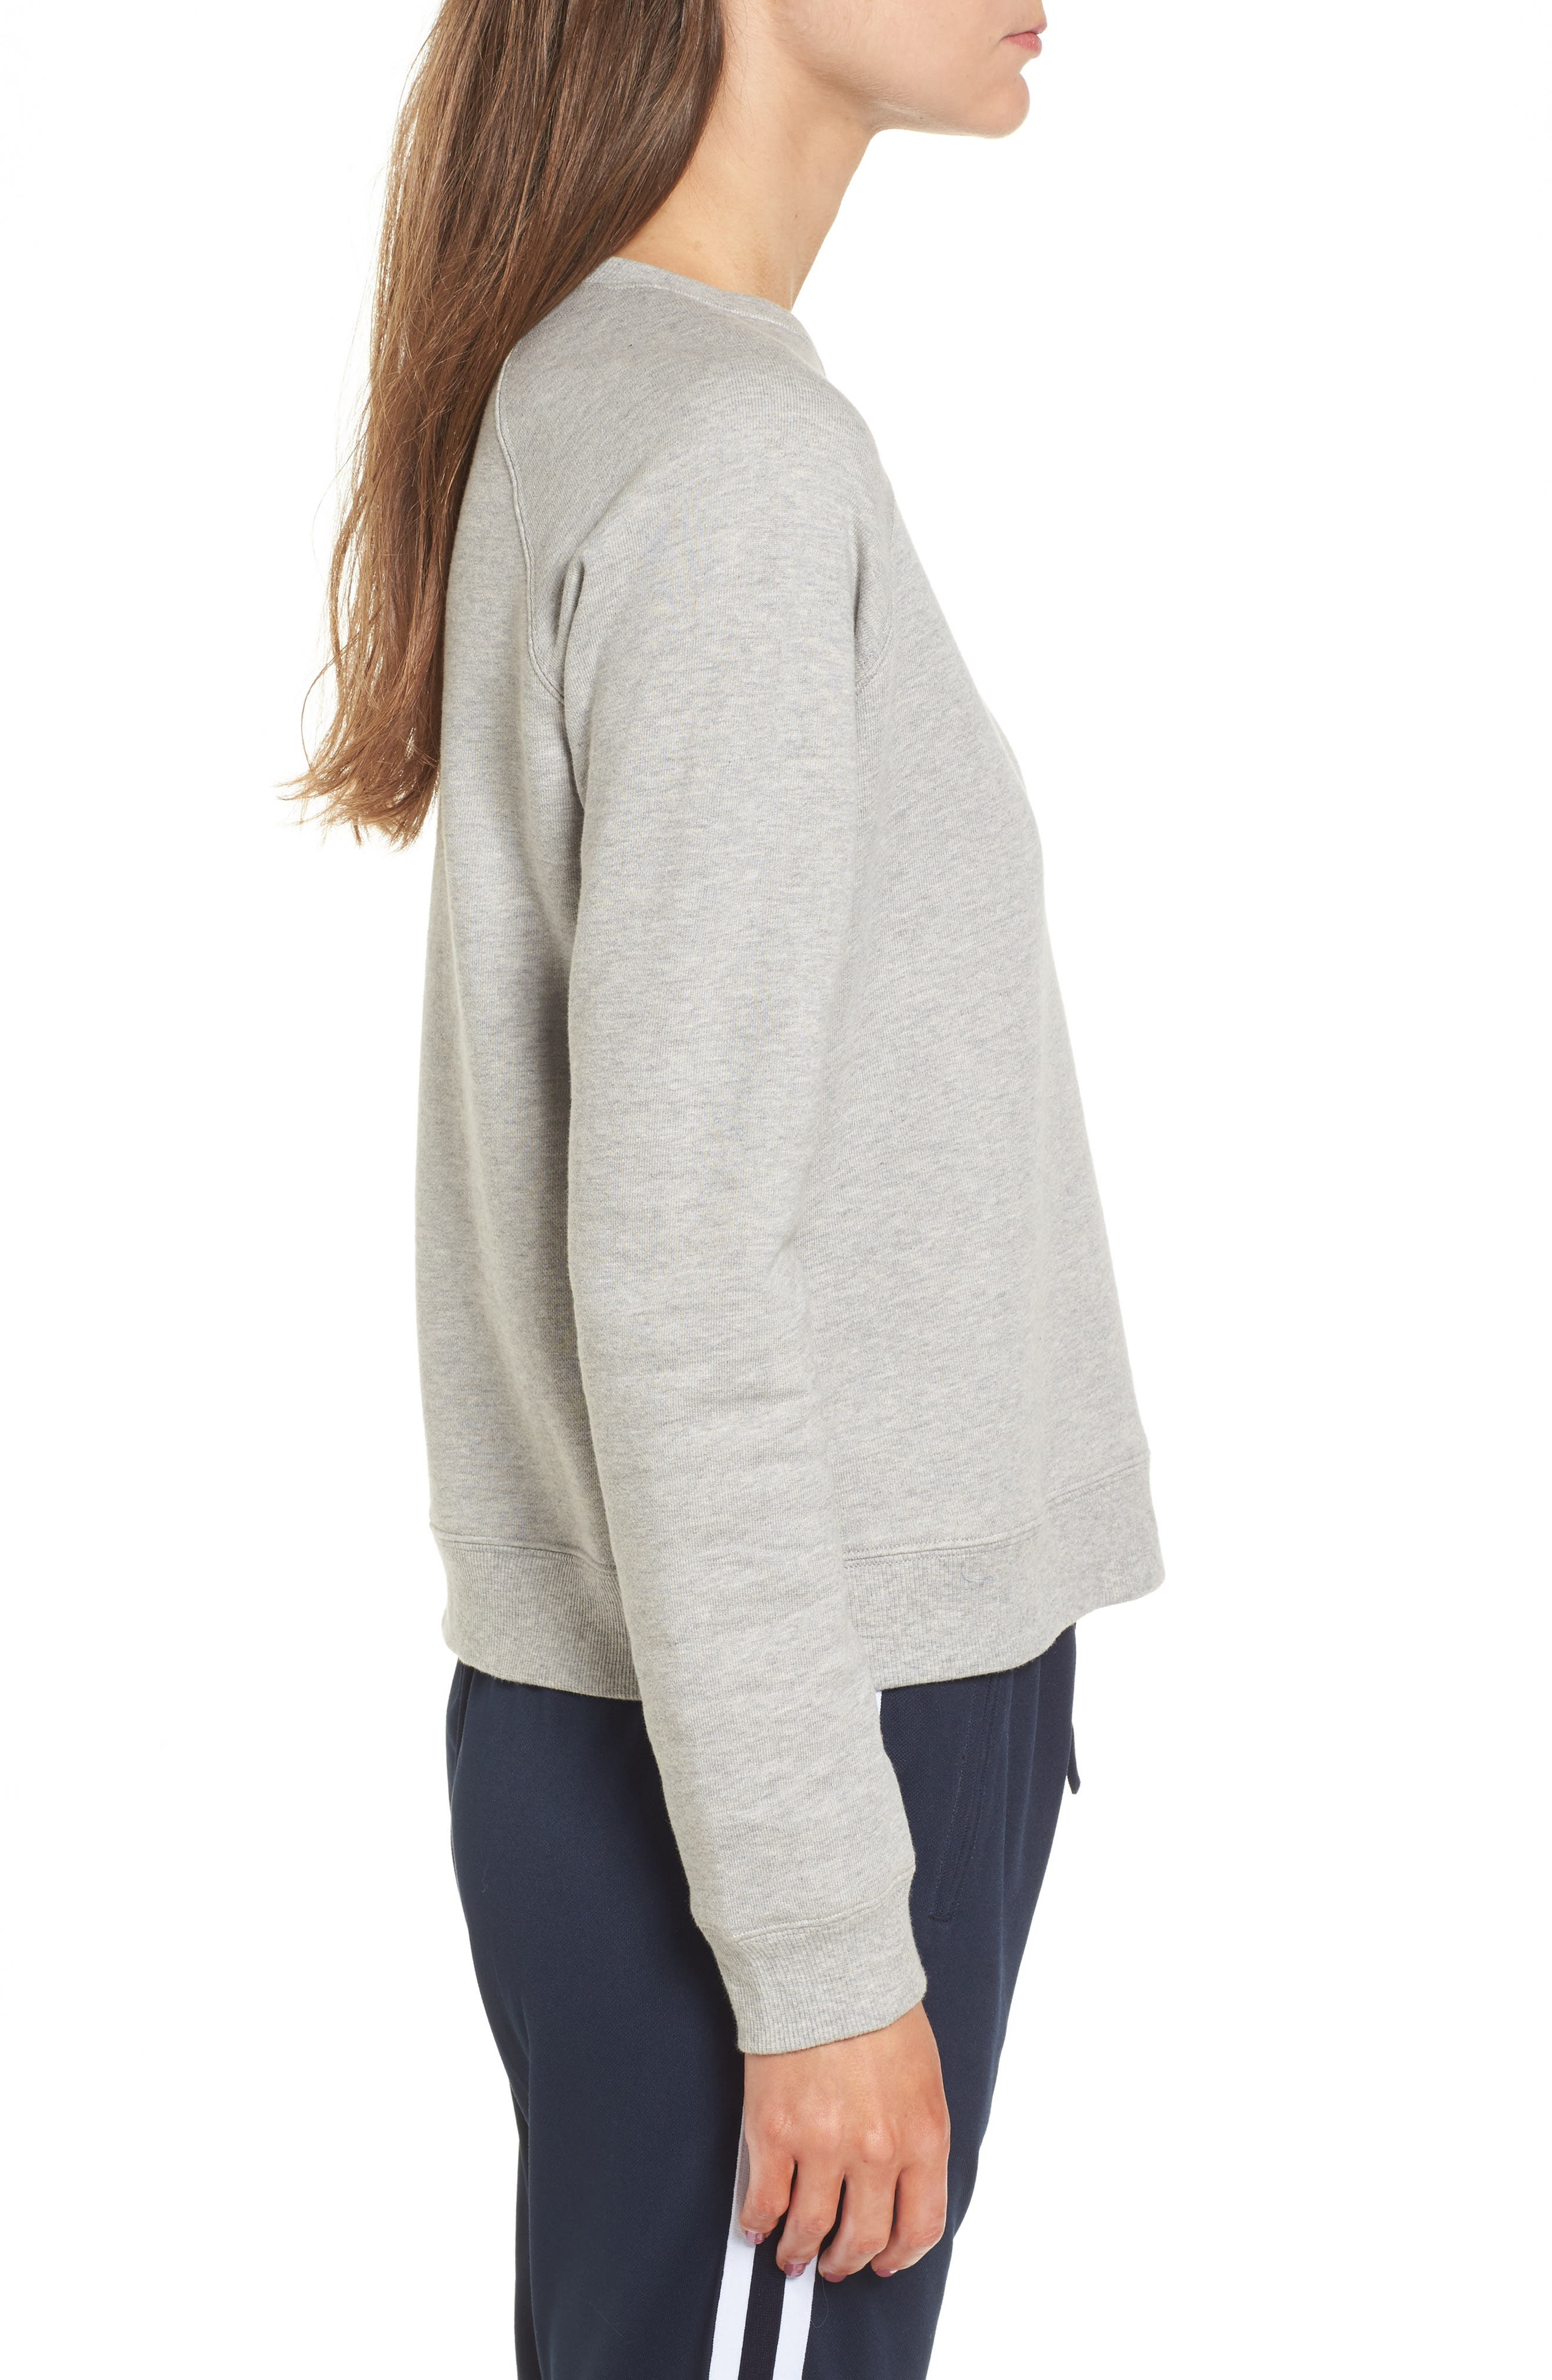 Out of Office Sweatshirt,                             Alternate thumbnail 3, color,